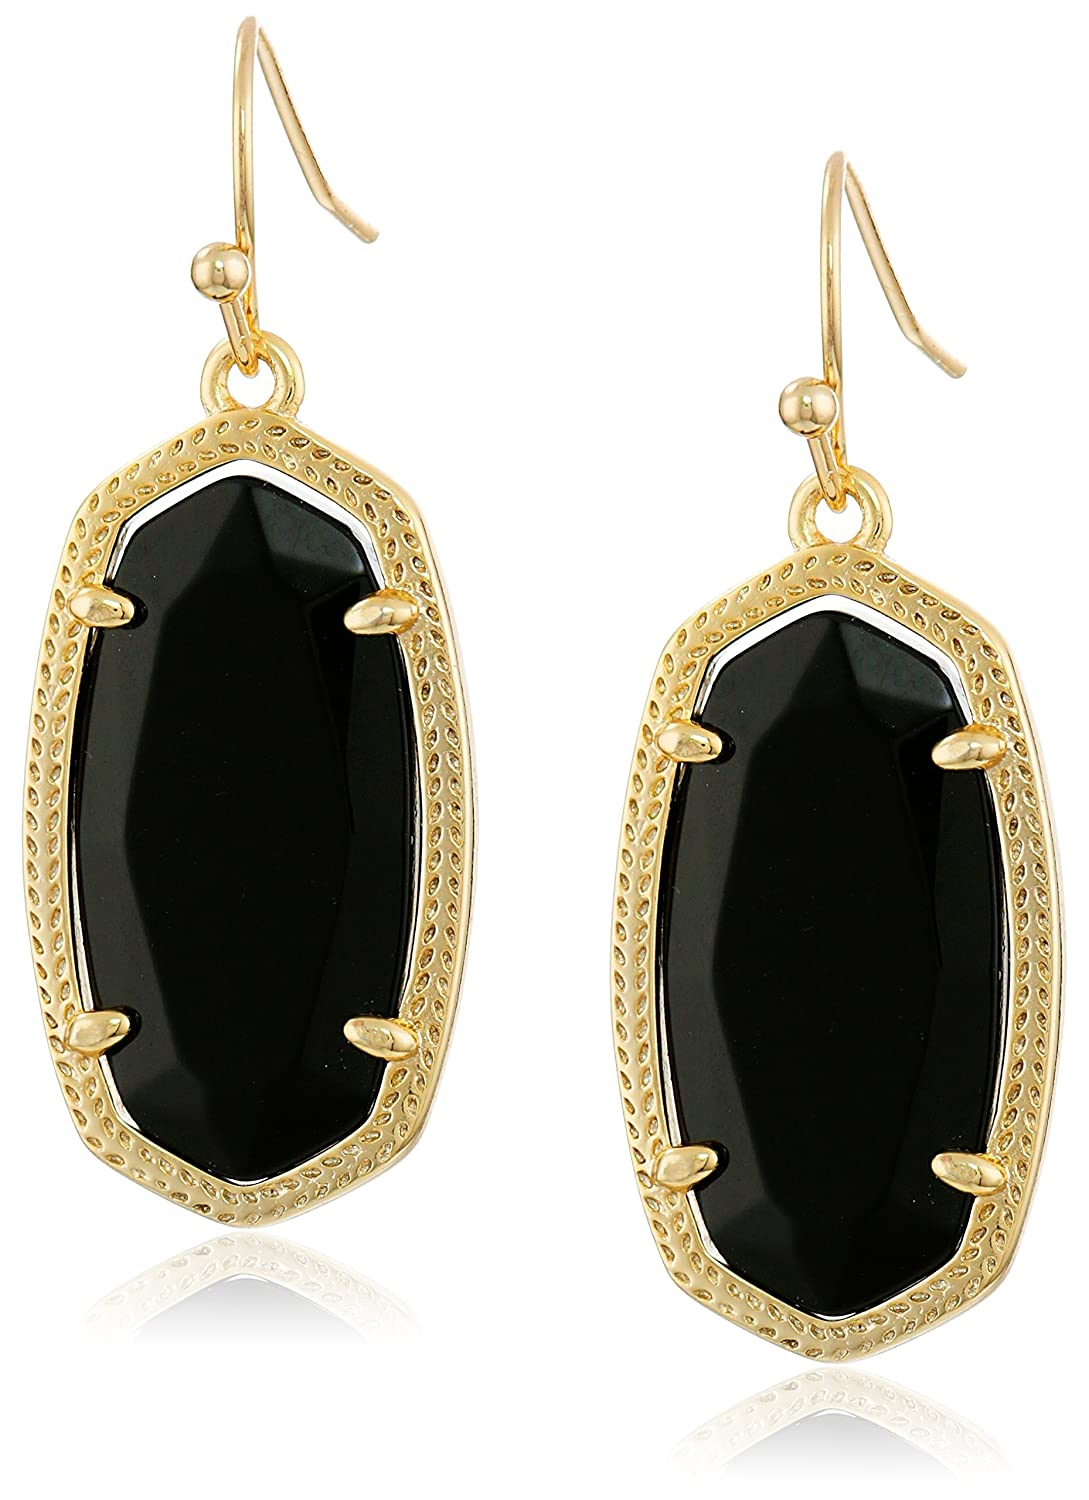 green alibaba jewelry showroom popular design silver earrings suppliers gemstone earring indian wholesale onyx